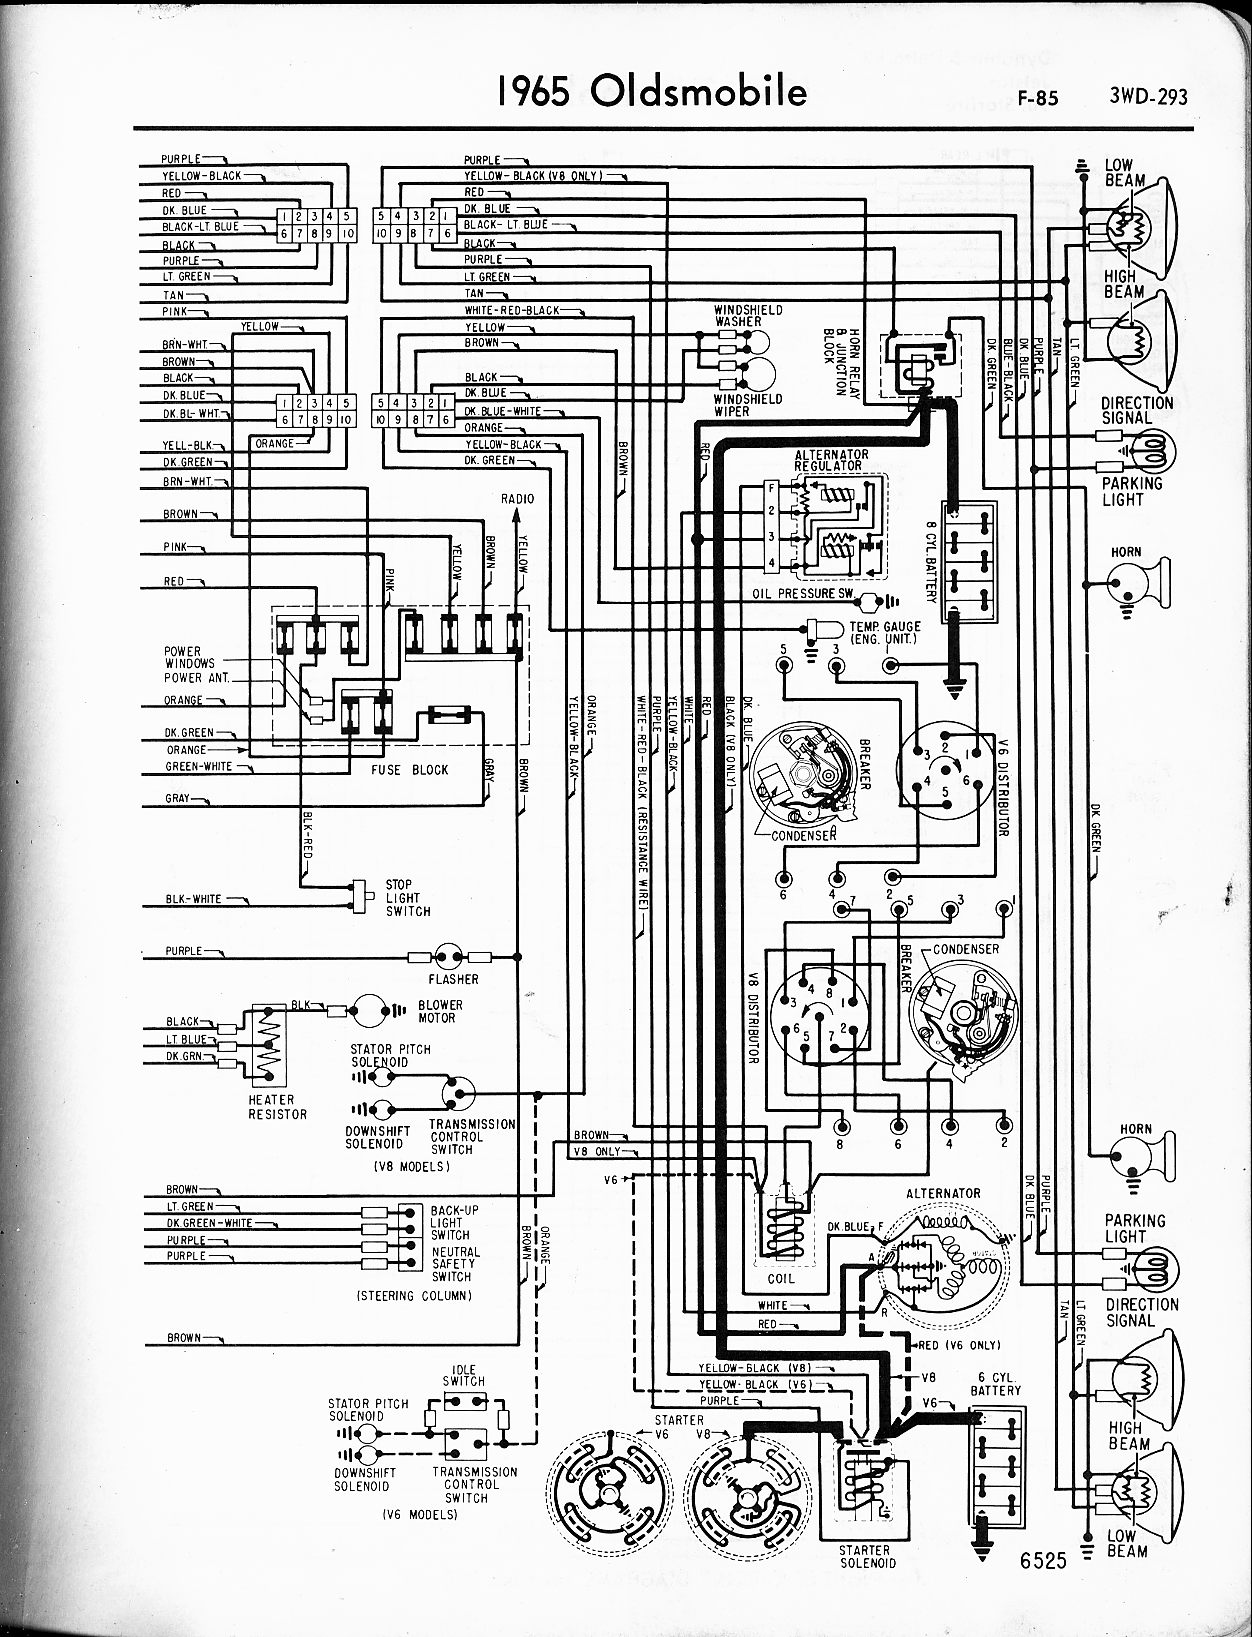 1965 oldsmobile 442 wiring diagram great installation of wiring 1969 Lemans Wiring Diagram oldsmobile wiring diagrams the old car manual project rh oldcarmanualproject com 1964 oldsmobile 442 1968 oldsmobile